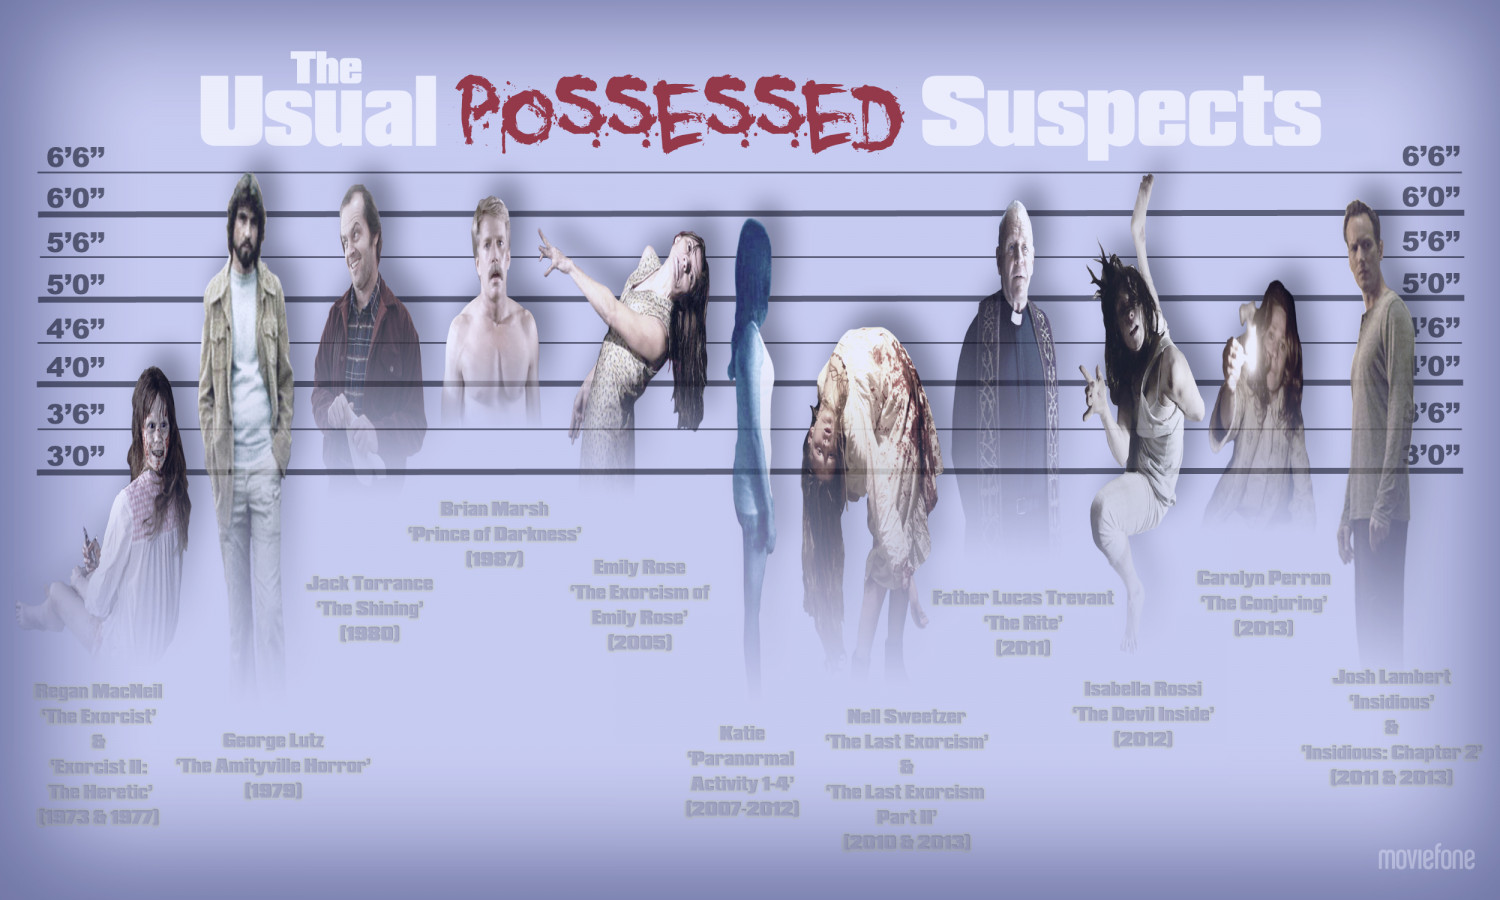 The Usual Possessed Suspects Infographic